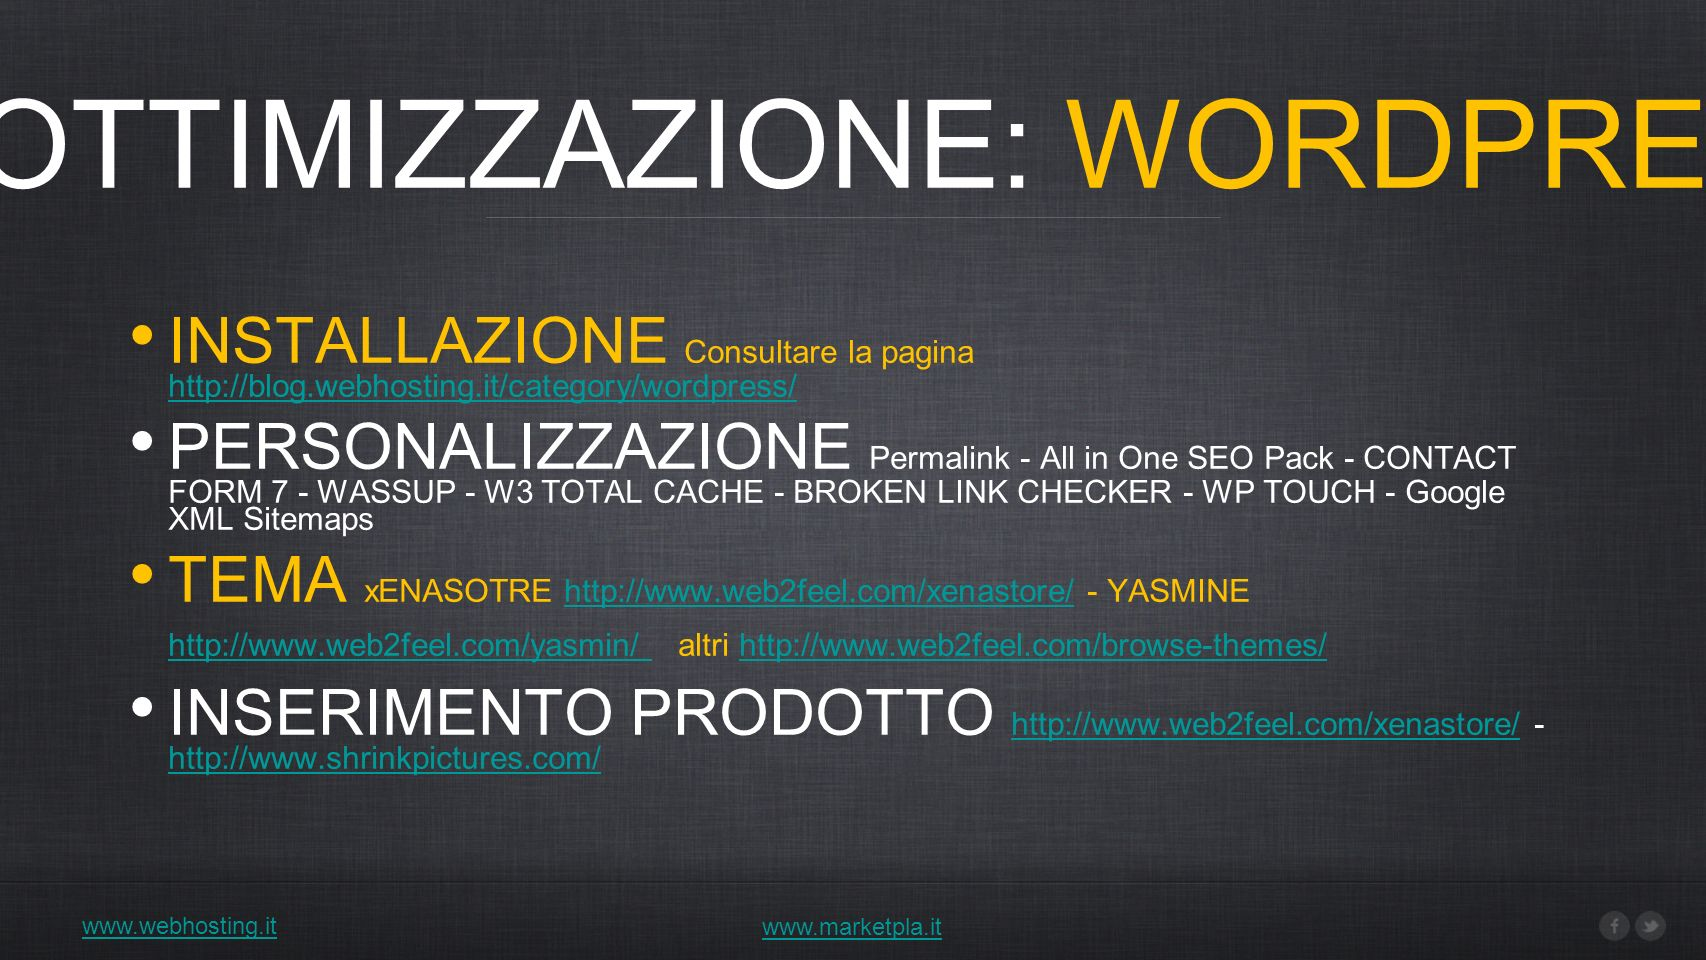 www.webhosting.it 1) OTTIMIZZAZIONE: WORDPRESS www.marketpla.it INSTALLAZIONE Consultare la pagina http://blog.webhosting.it/category/wordpress/ http://blog.webhosting.it/category/wordpress/ PERSONALIZZAZIONE Permalink - All in One SEO Pack - CONTACT FORM 7 - WASSUP - W3 TOTAL CACHE - BROKEN LINK CHECKER - WP TOUCH - Google XML Sitemaps TEMA xENASOTRE http://www.web2feel.com/xenastore/ - YASMINE http://www.web2feel.com/yasmin/ altri http://www.web2feel.com/browse-themes/http://www.web2feel.com/xenastore/ http://www.web2feel.com/yasmin/ http://www.web2feel.com/browse-themes/ INSERIMENTO PRODOTTO http://www.web2feel.com/xenastore/ - http://www.shrinkpictures.com/ http://www.web2feel.com/xenastore/ http://www.shrinkpictures.com/